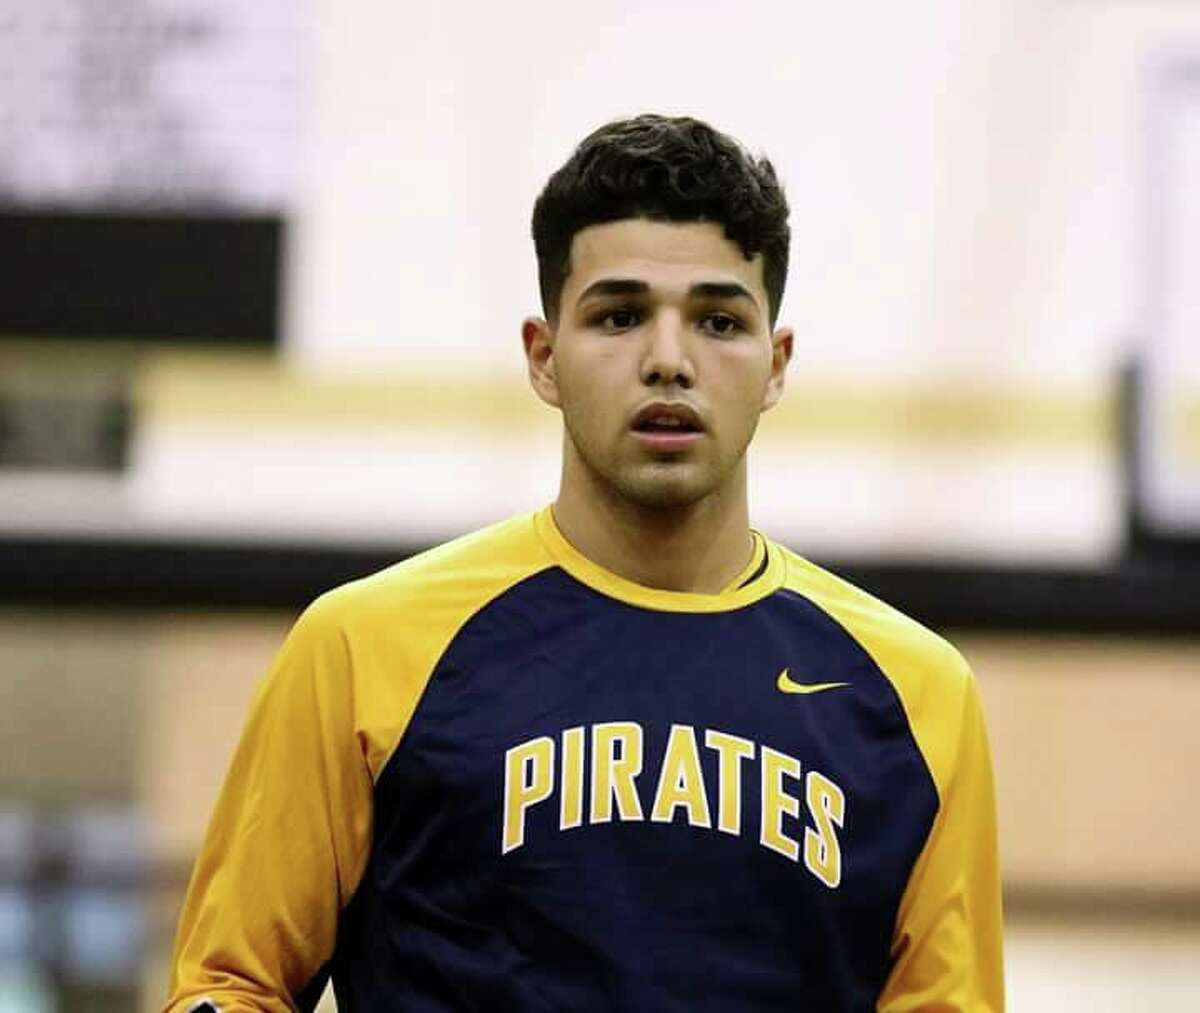 """Luis """"Bruno"""" Gonzales, a 2017 graduate and basketball star of Poth High School, fell asleep while driving early on July 12, 2018, and died immediately. Gonzales was originally from San Antonio."""